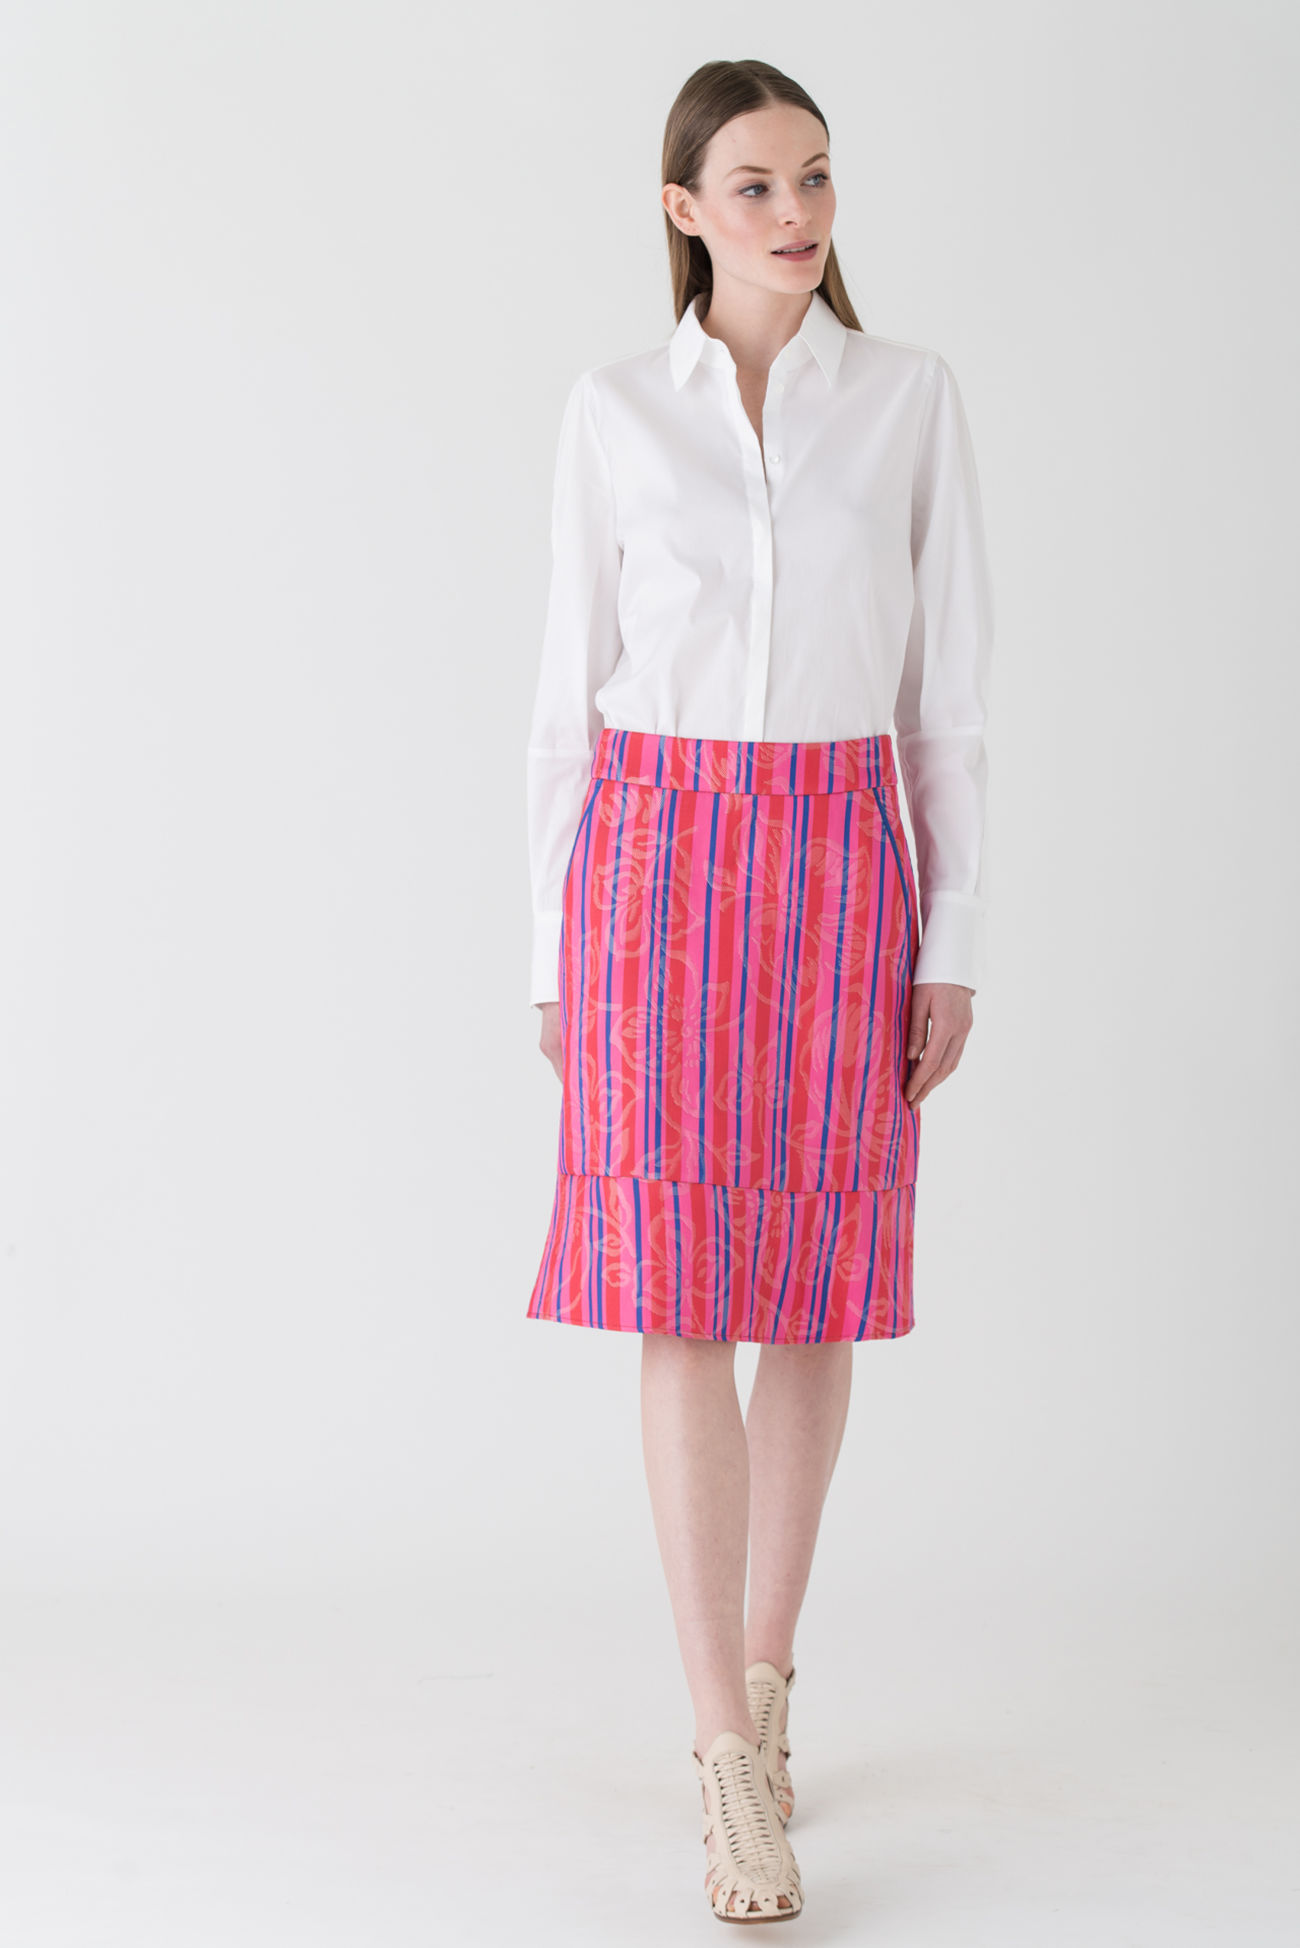 Flared skirt made of classy jacquard fabric